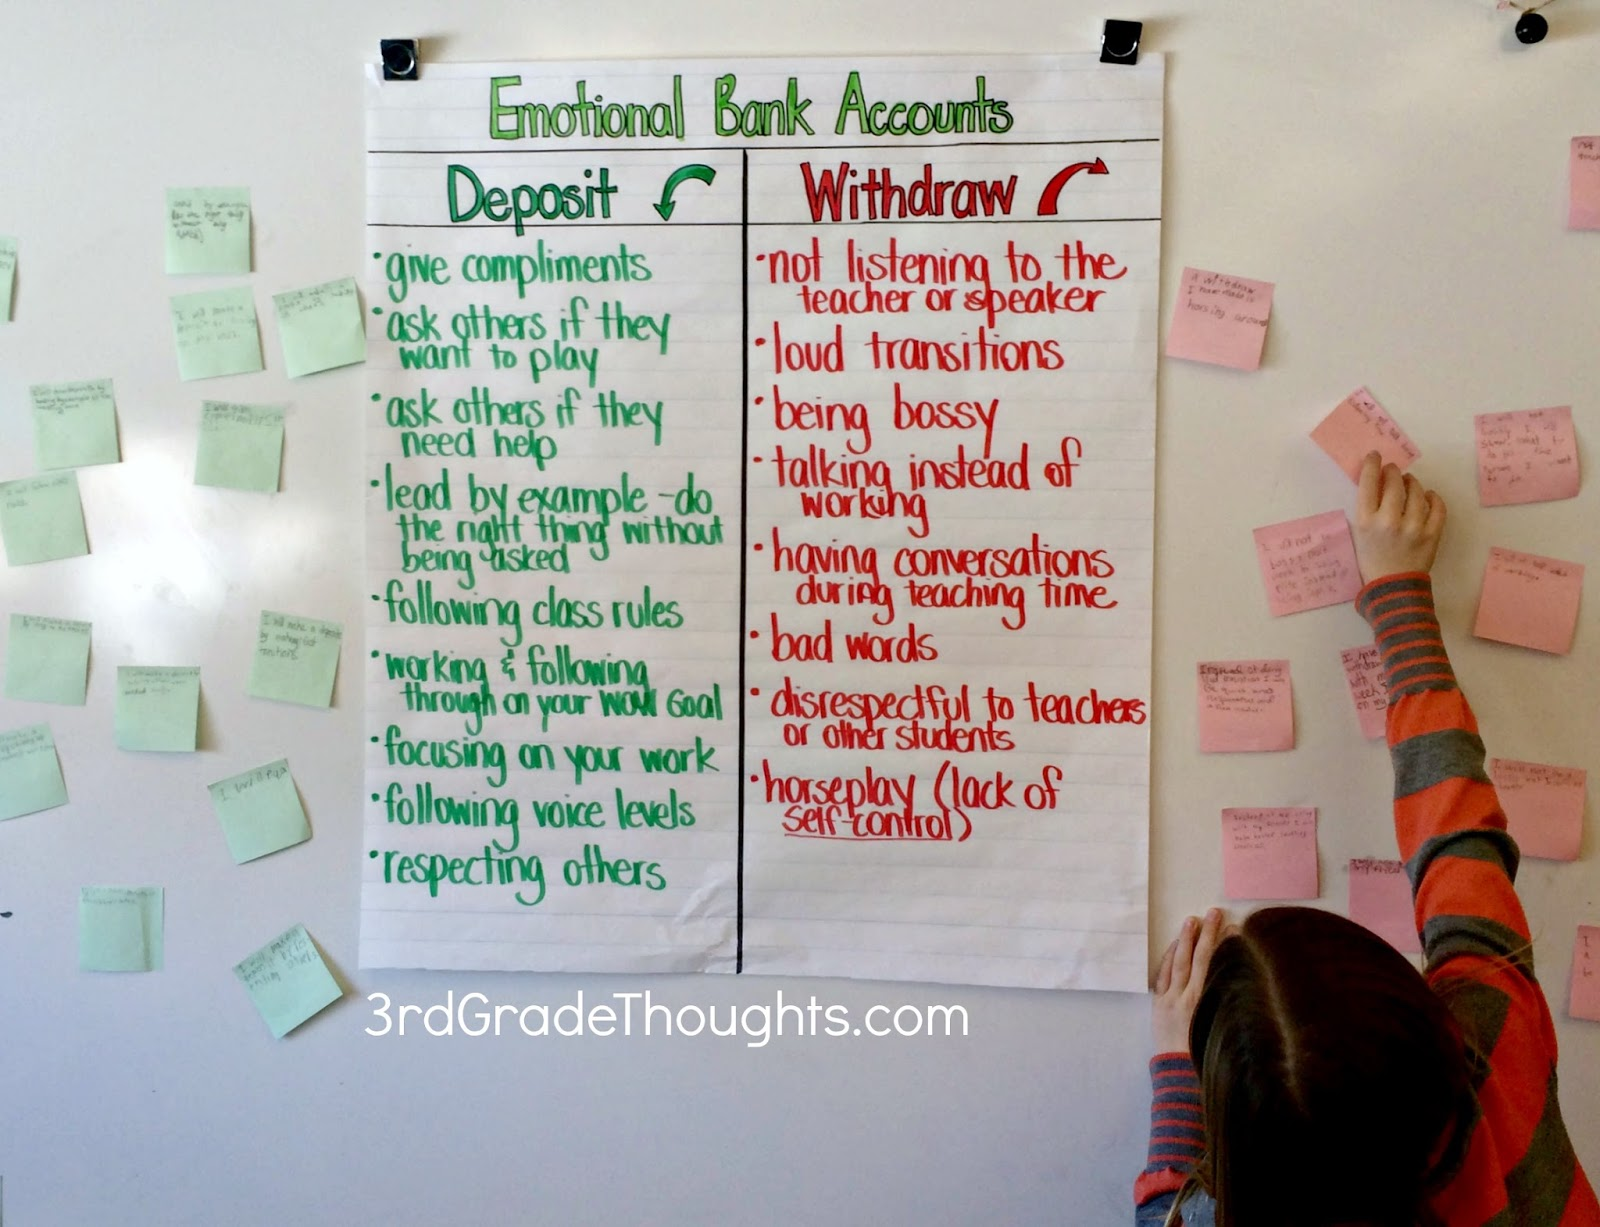 Sensational Deposits Withdraws To Our Emotional Bank Accounts 3Rd Download Free Architecture Designs Itiscsunscenecom